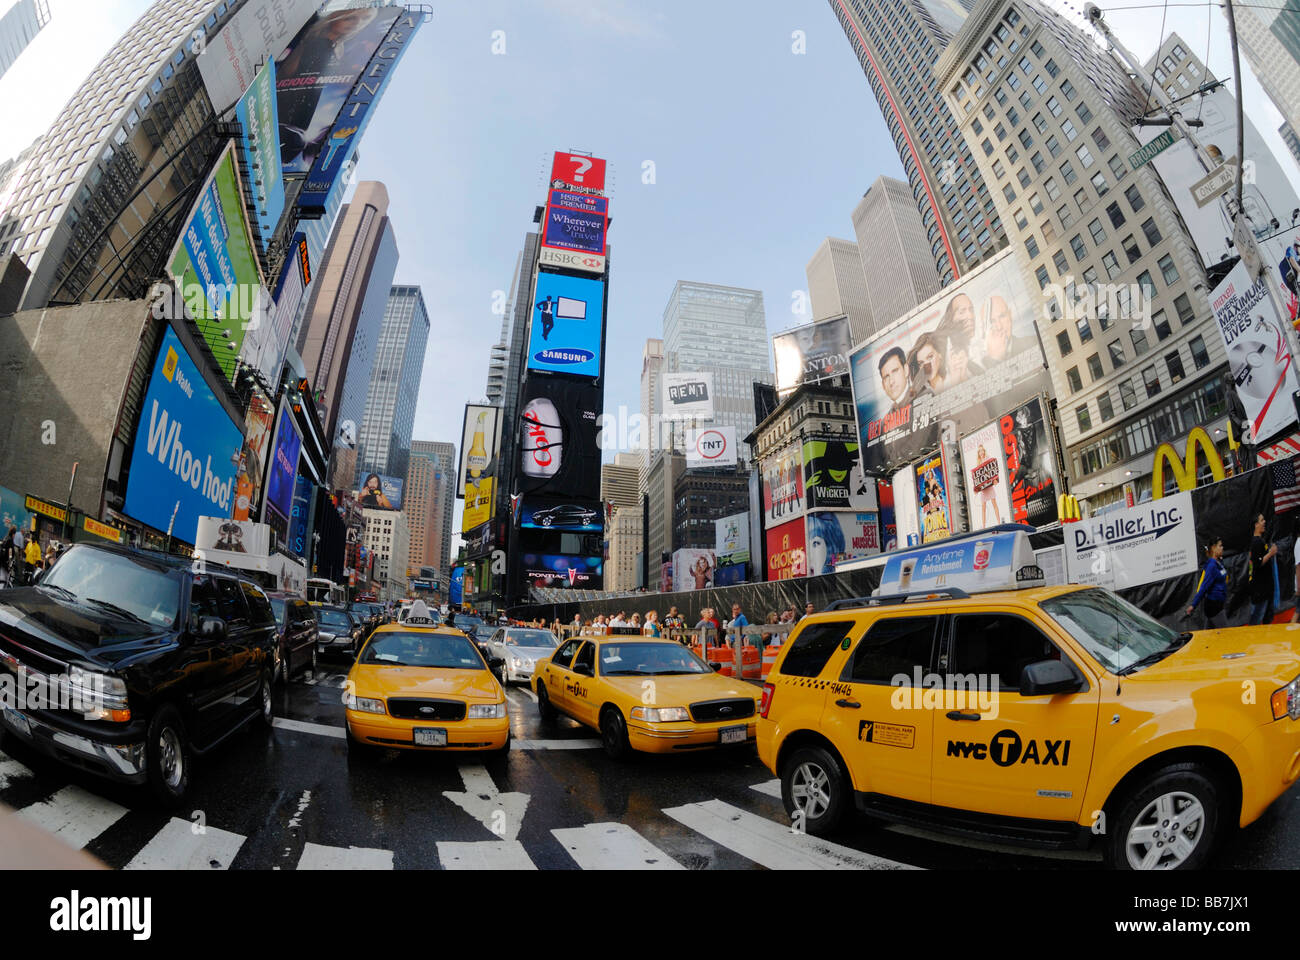 Time Square during rush hour, New York City, USA - Stock Image